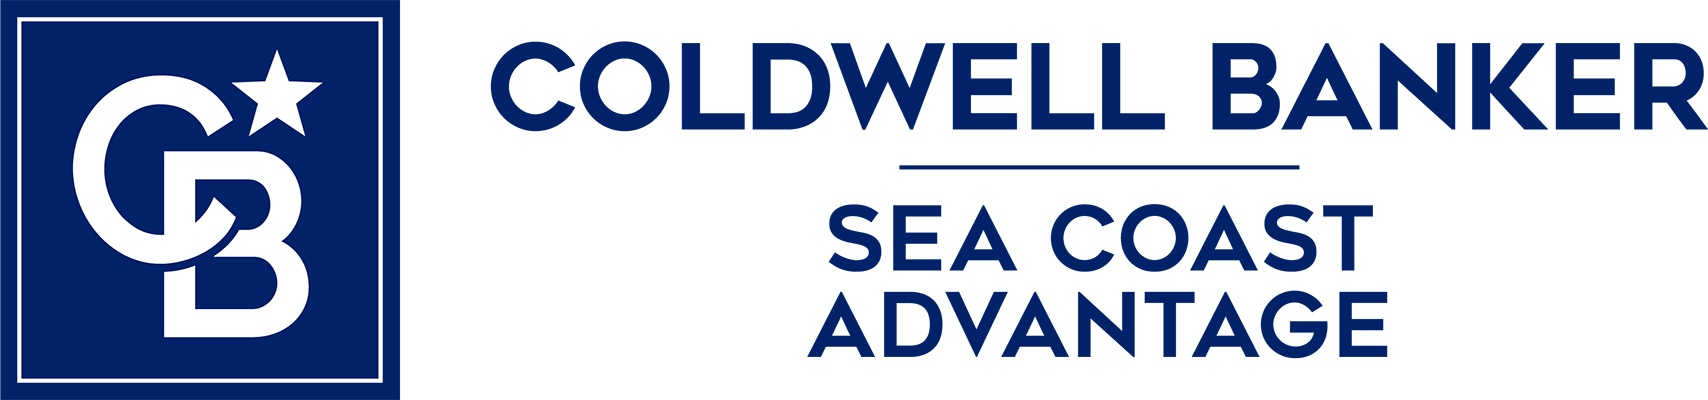 Liz Bianchini - Coldwell Banker Sea Coast Advantage Realty Logo